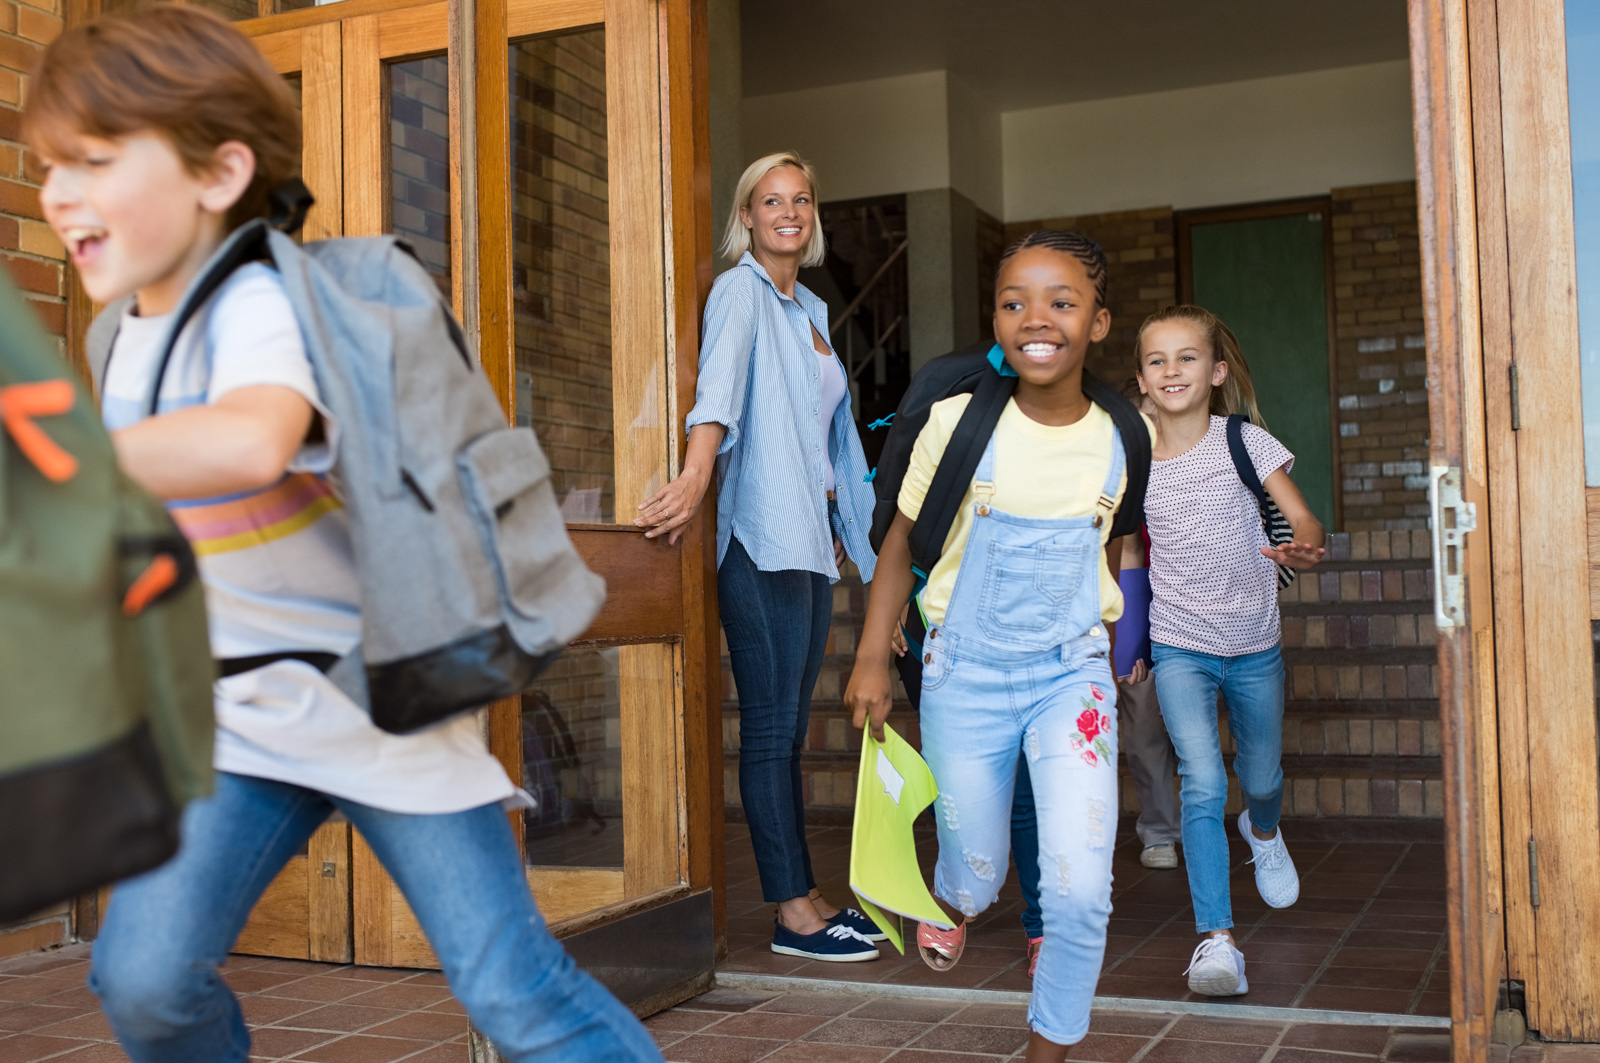 Image of school children outside the front entrance of a school walking towards to the entrance